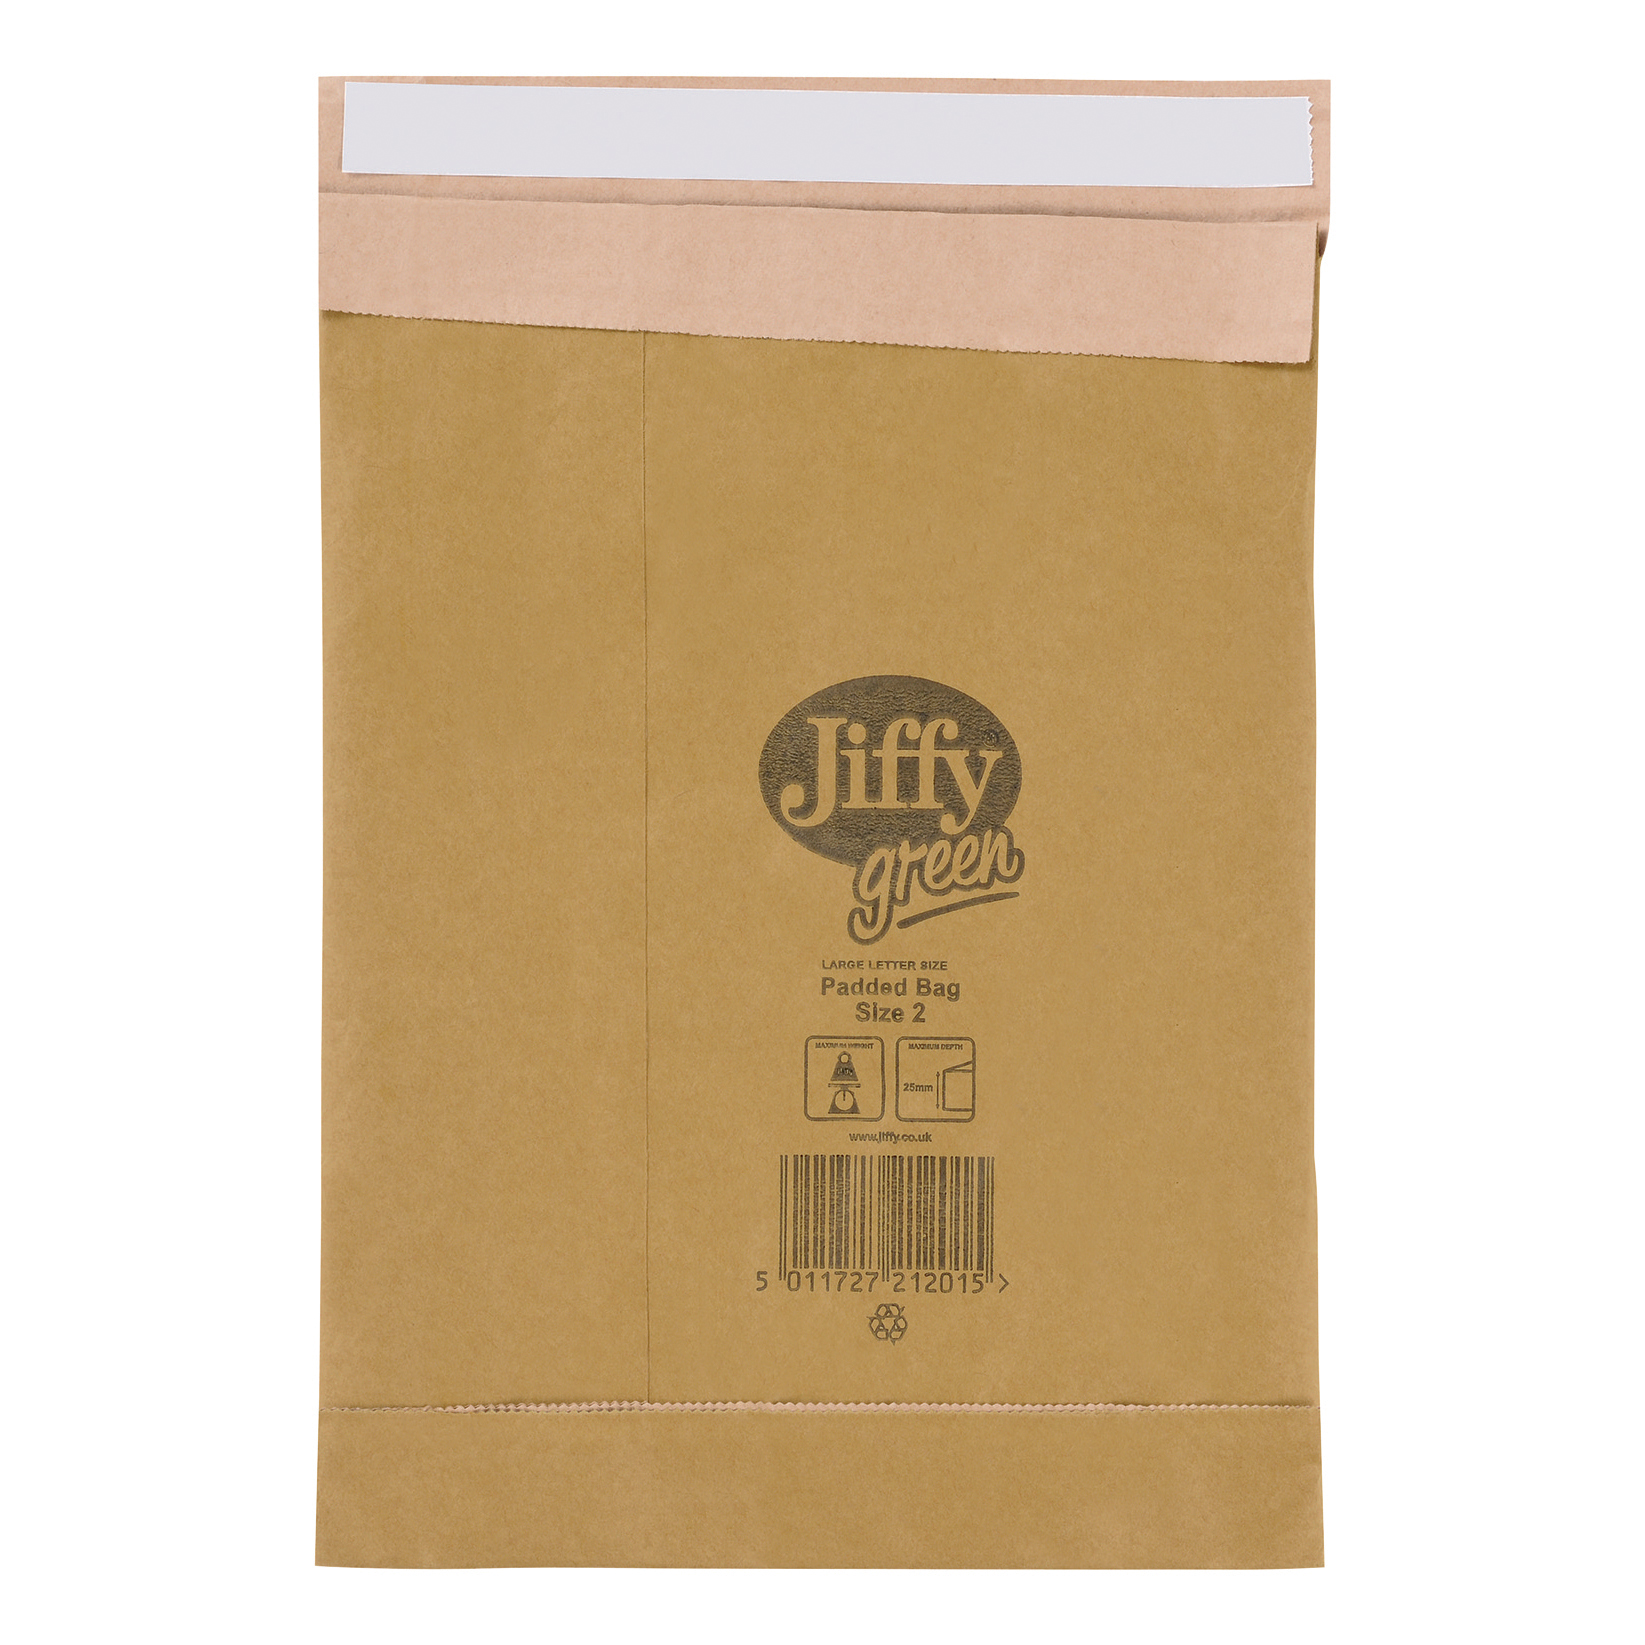 Padded Bags & Envelopes Jiffy Padded Bag Envelopes Size 2 195x280mm Brown Ref JPB-2 [Pack 100]